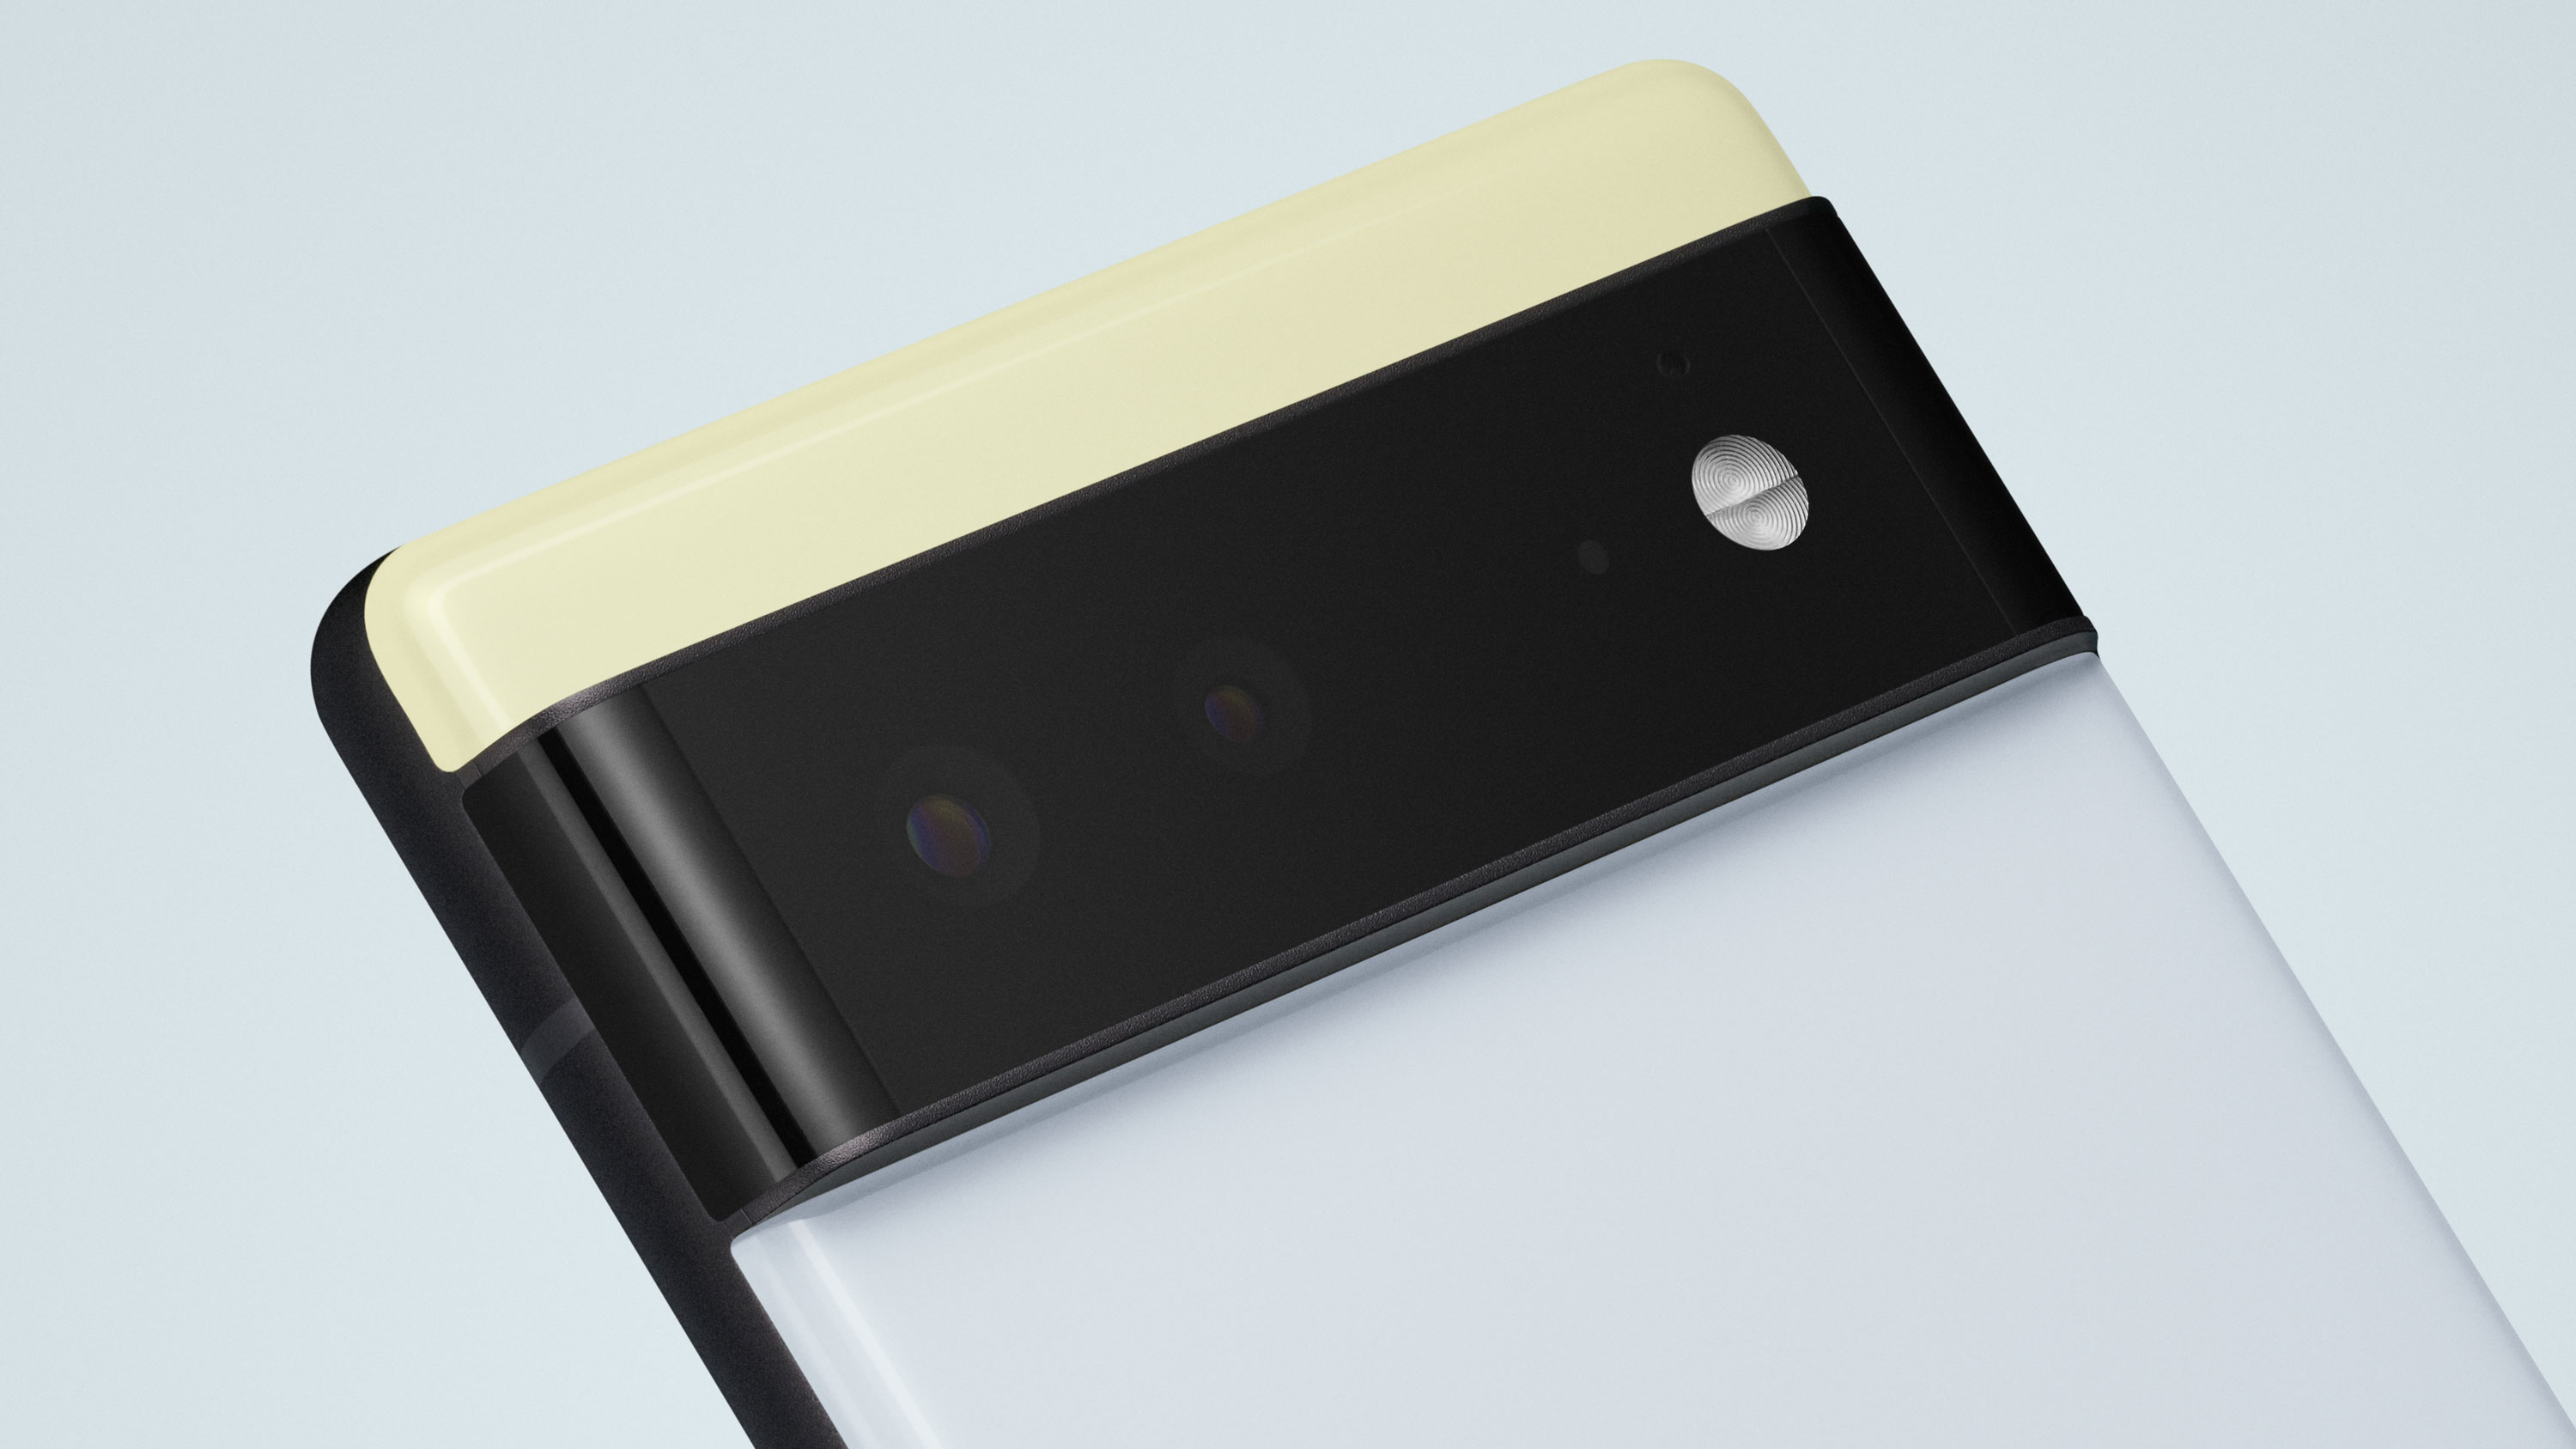 Close up of the camera bar on the rear of the Pixel 6